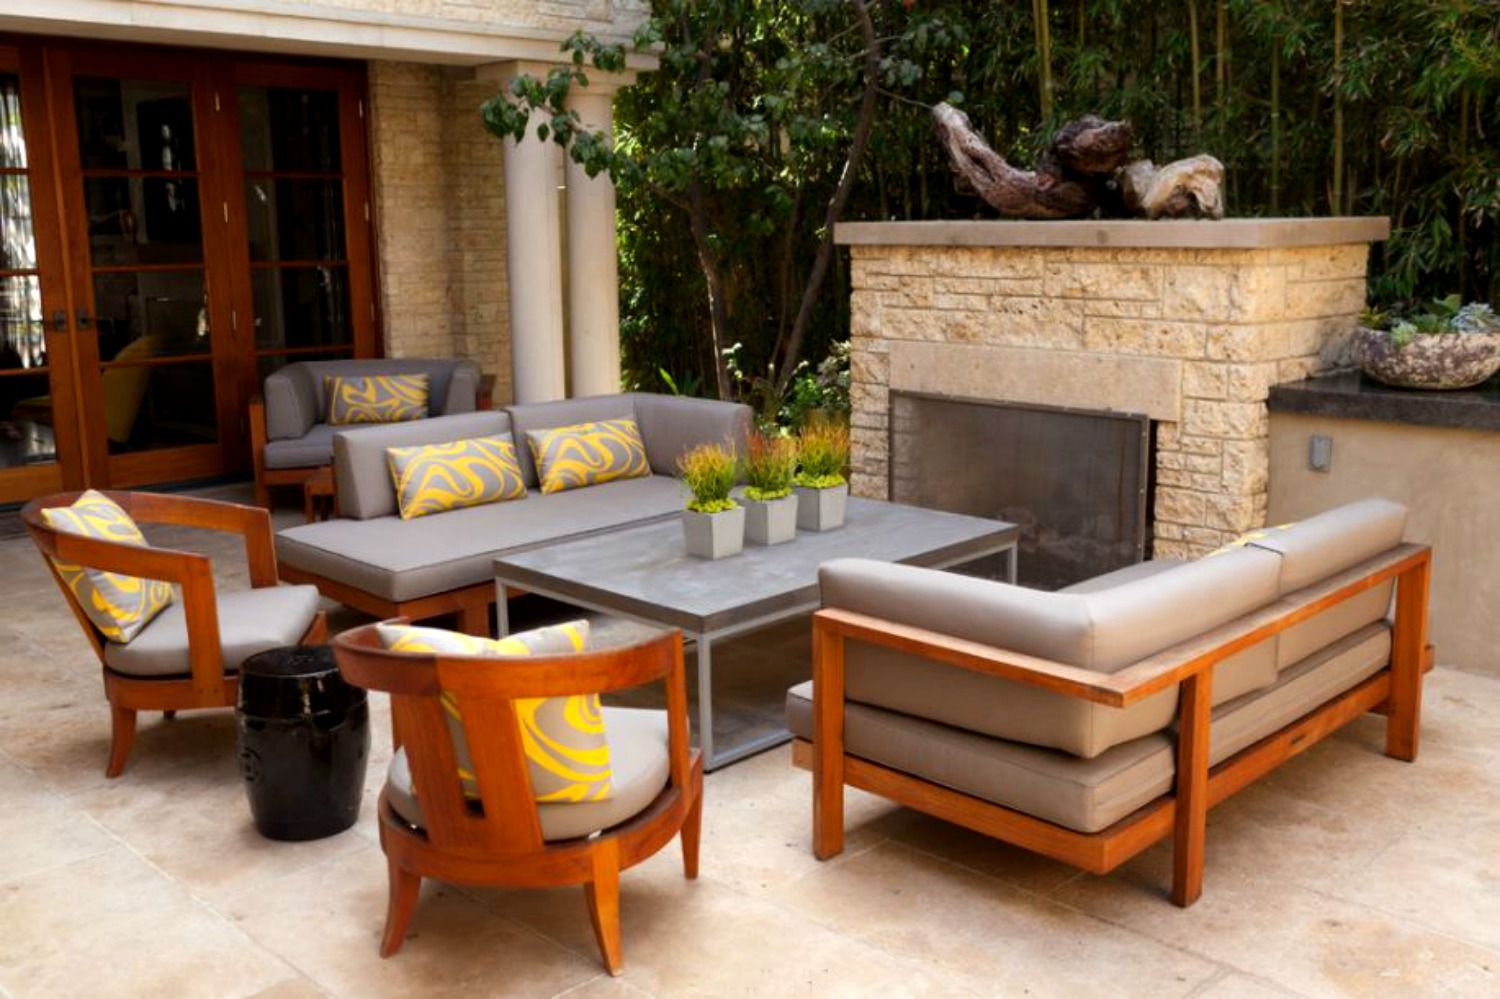 Outstanding 50 Outdoor Living Room Design Ideas Camellatalisay Diy Chair Ideas Camellatalisaycom